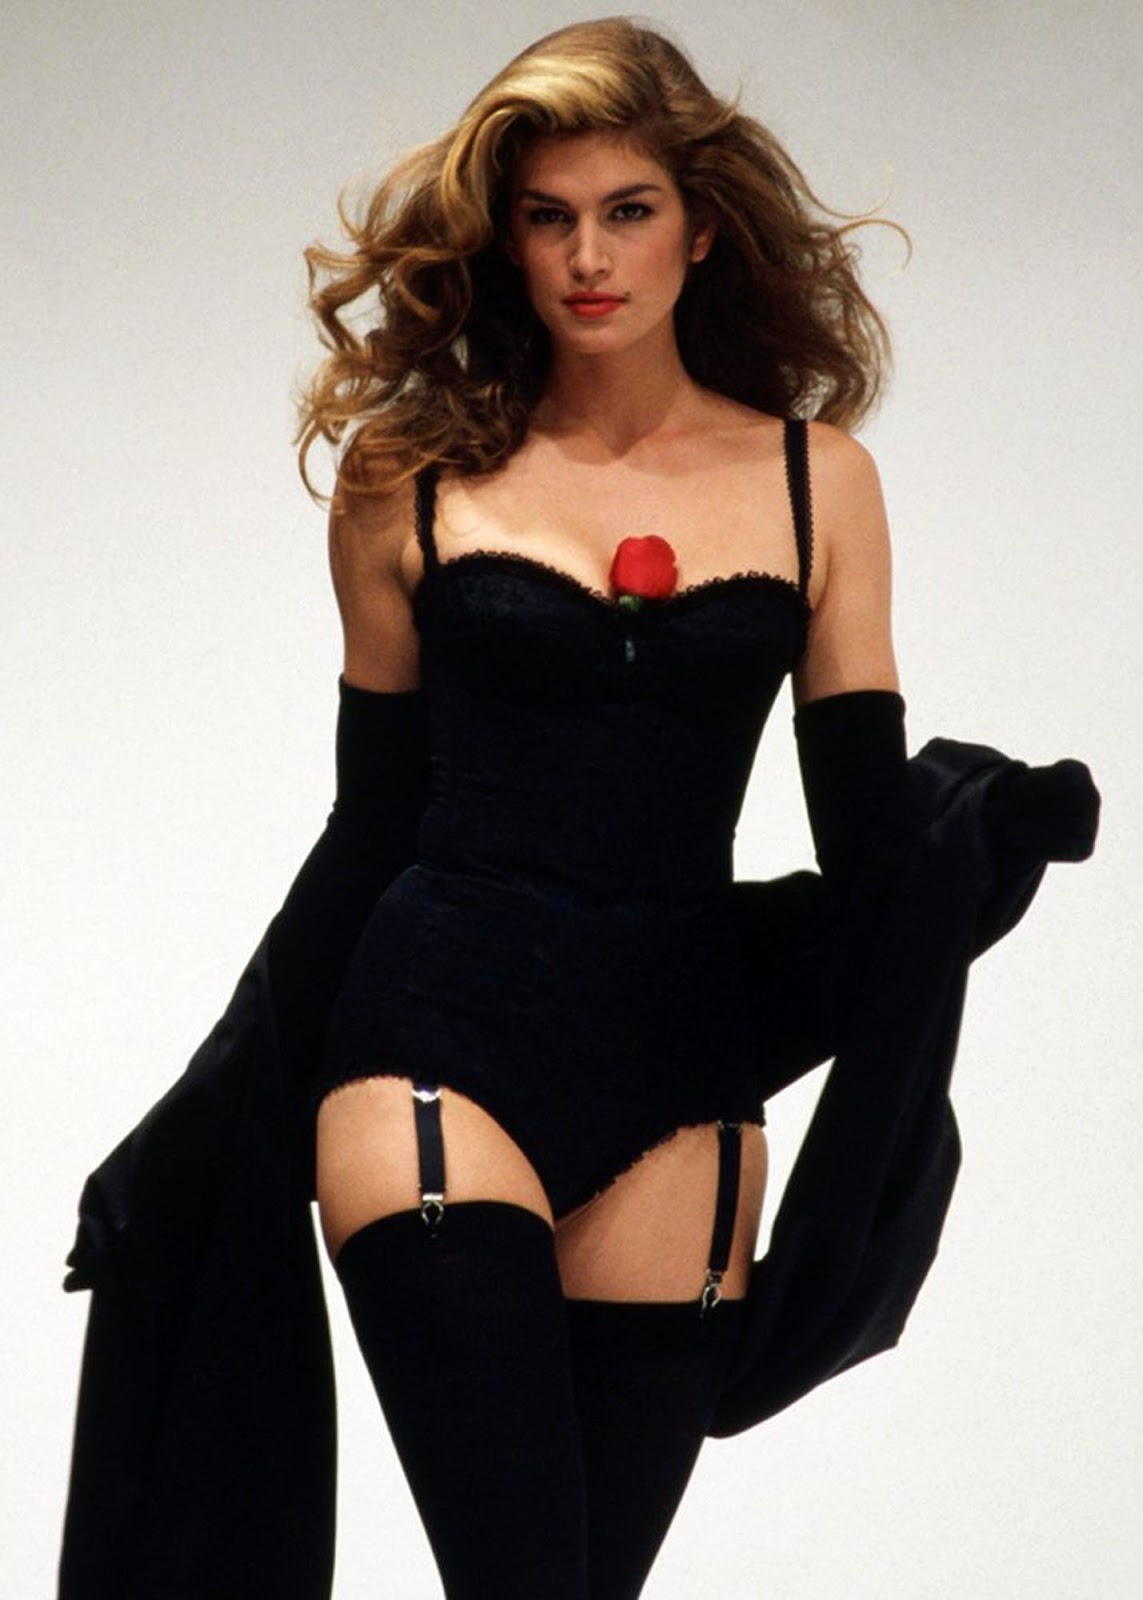 Eniwhere Fashion - Top Models 90's - Cindy Crawford